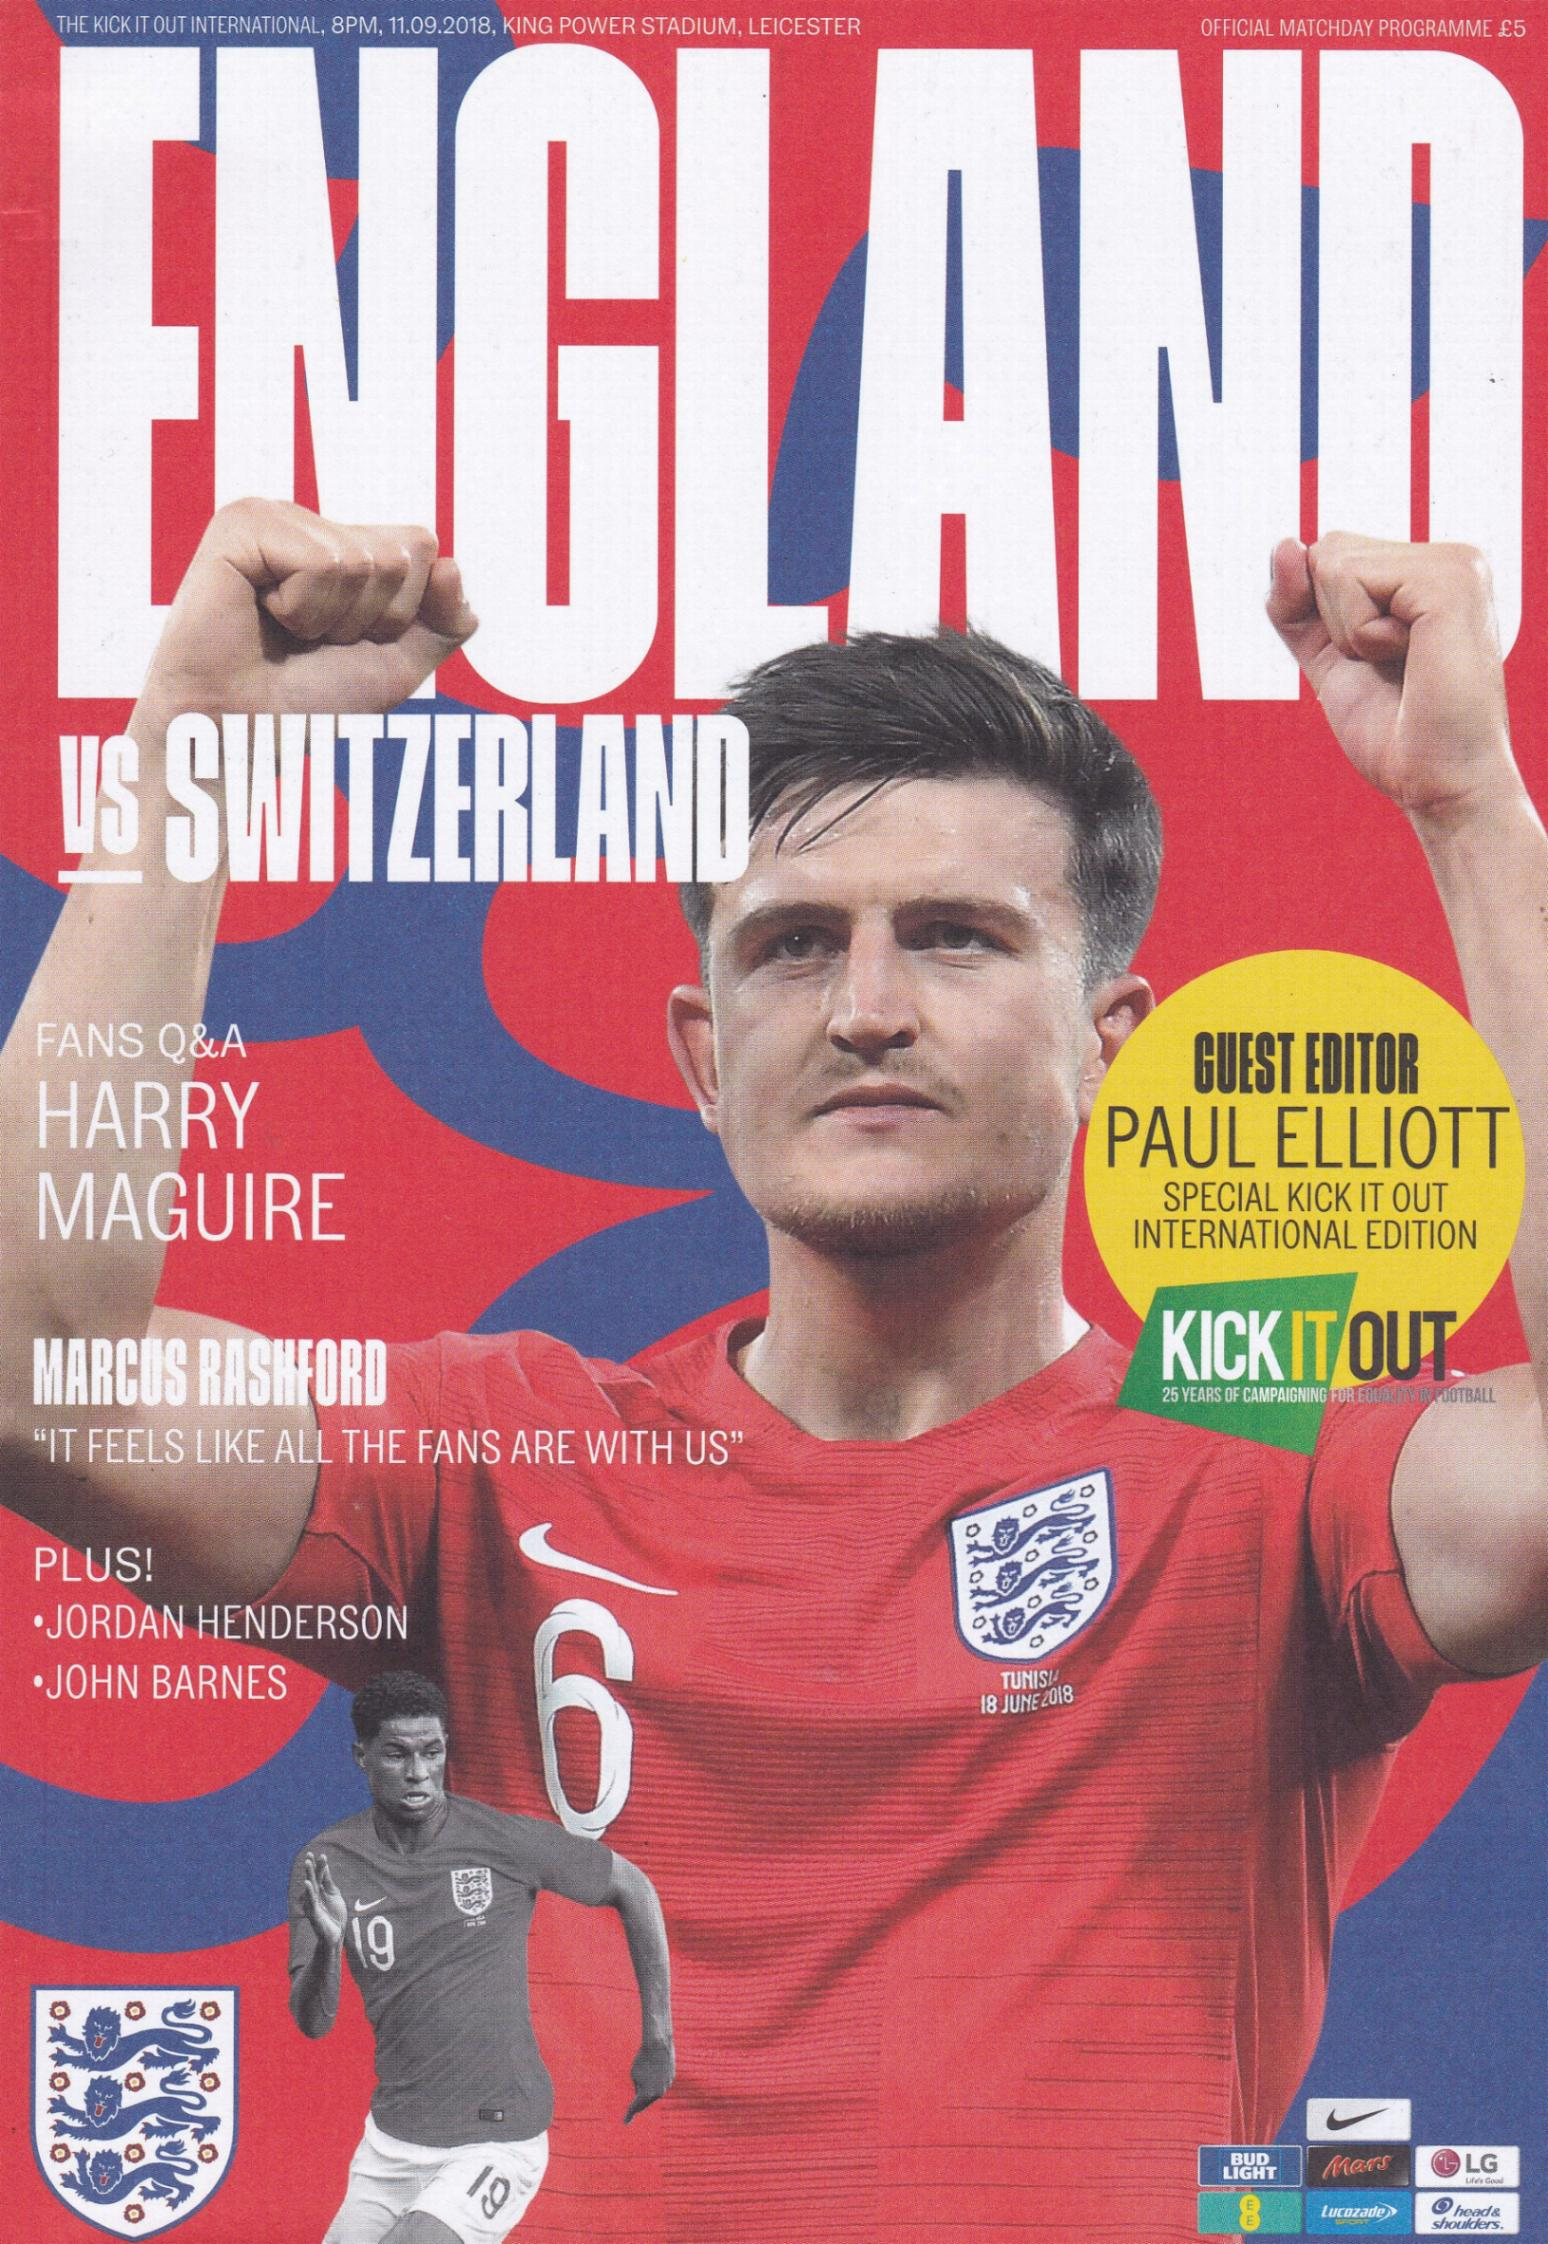 2018 - ENGLAND v SWITZERLAND